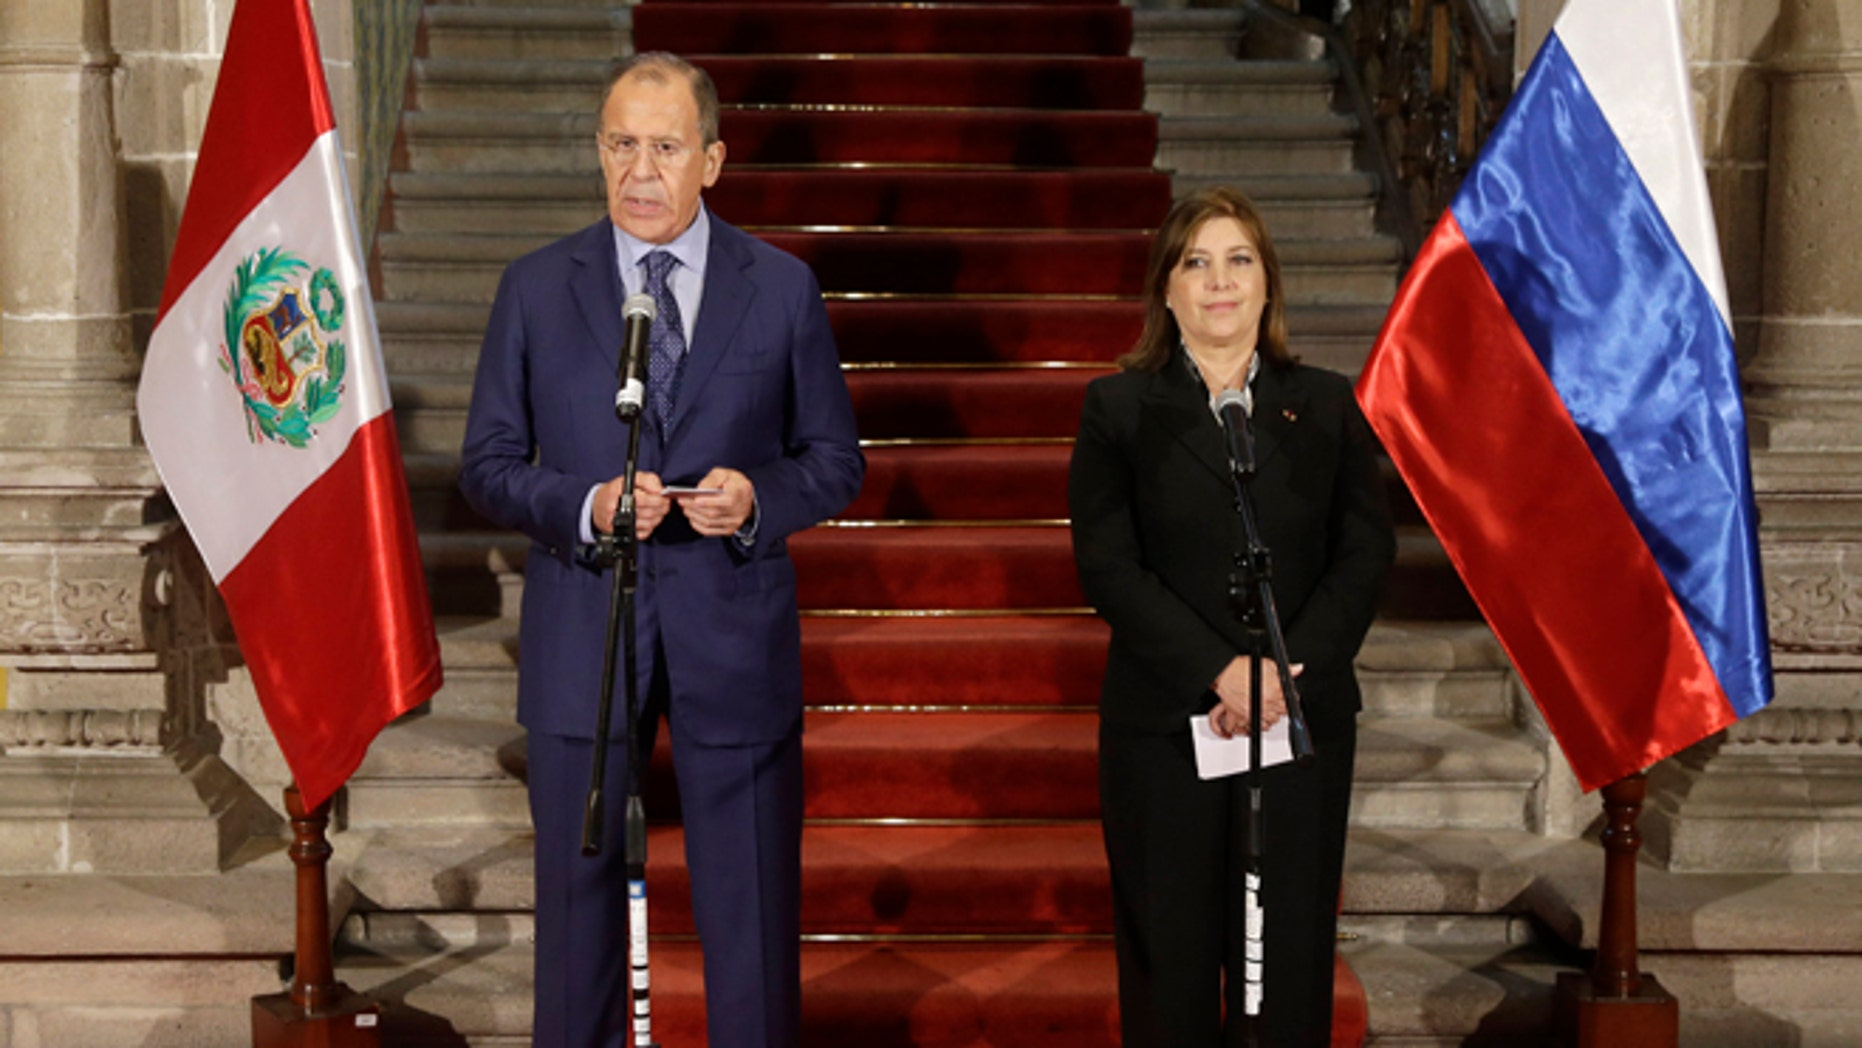 Russian's Foreign Minister Sergey Lavrov, talks during a joint press conference, next to Peru's Foreign Minister Eda Rivas at the Foreign Ministry building in Lima, Peru, Wednesday, April 30, 2014. Lavrov is Lima, for a visit of one day in his tour of Latin America. (AP Photo/Martin Mejia)